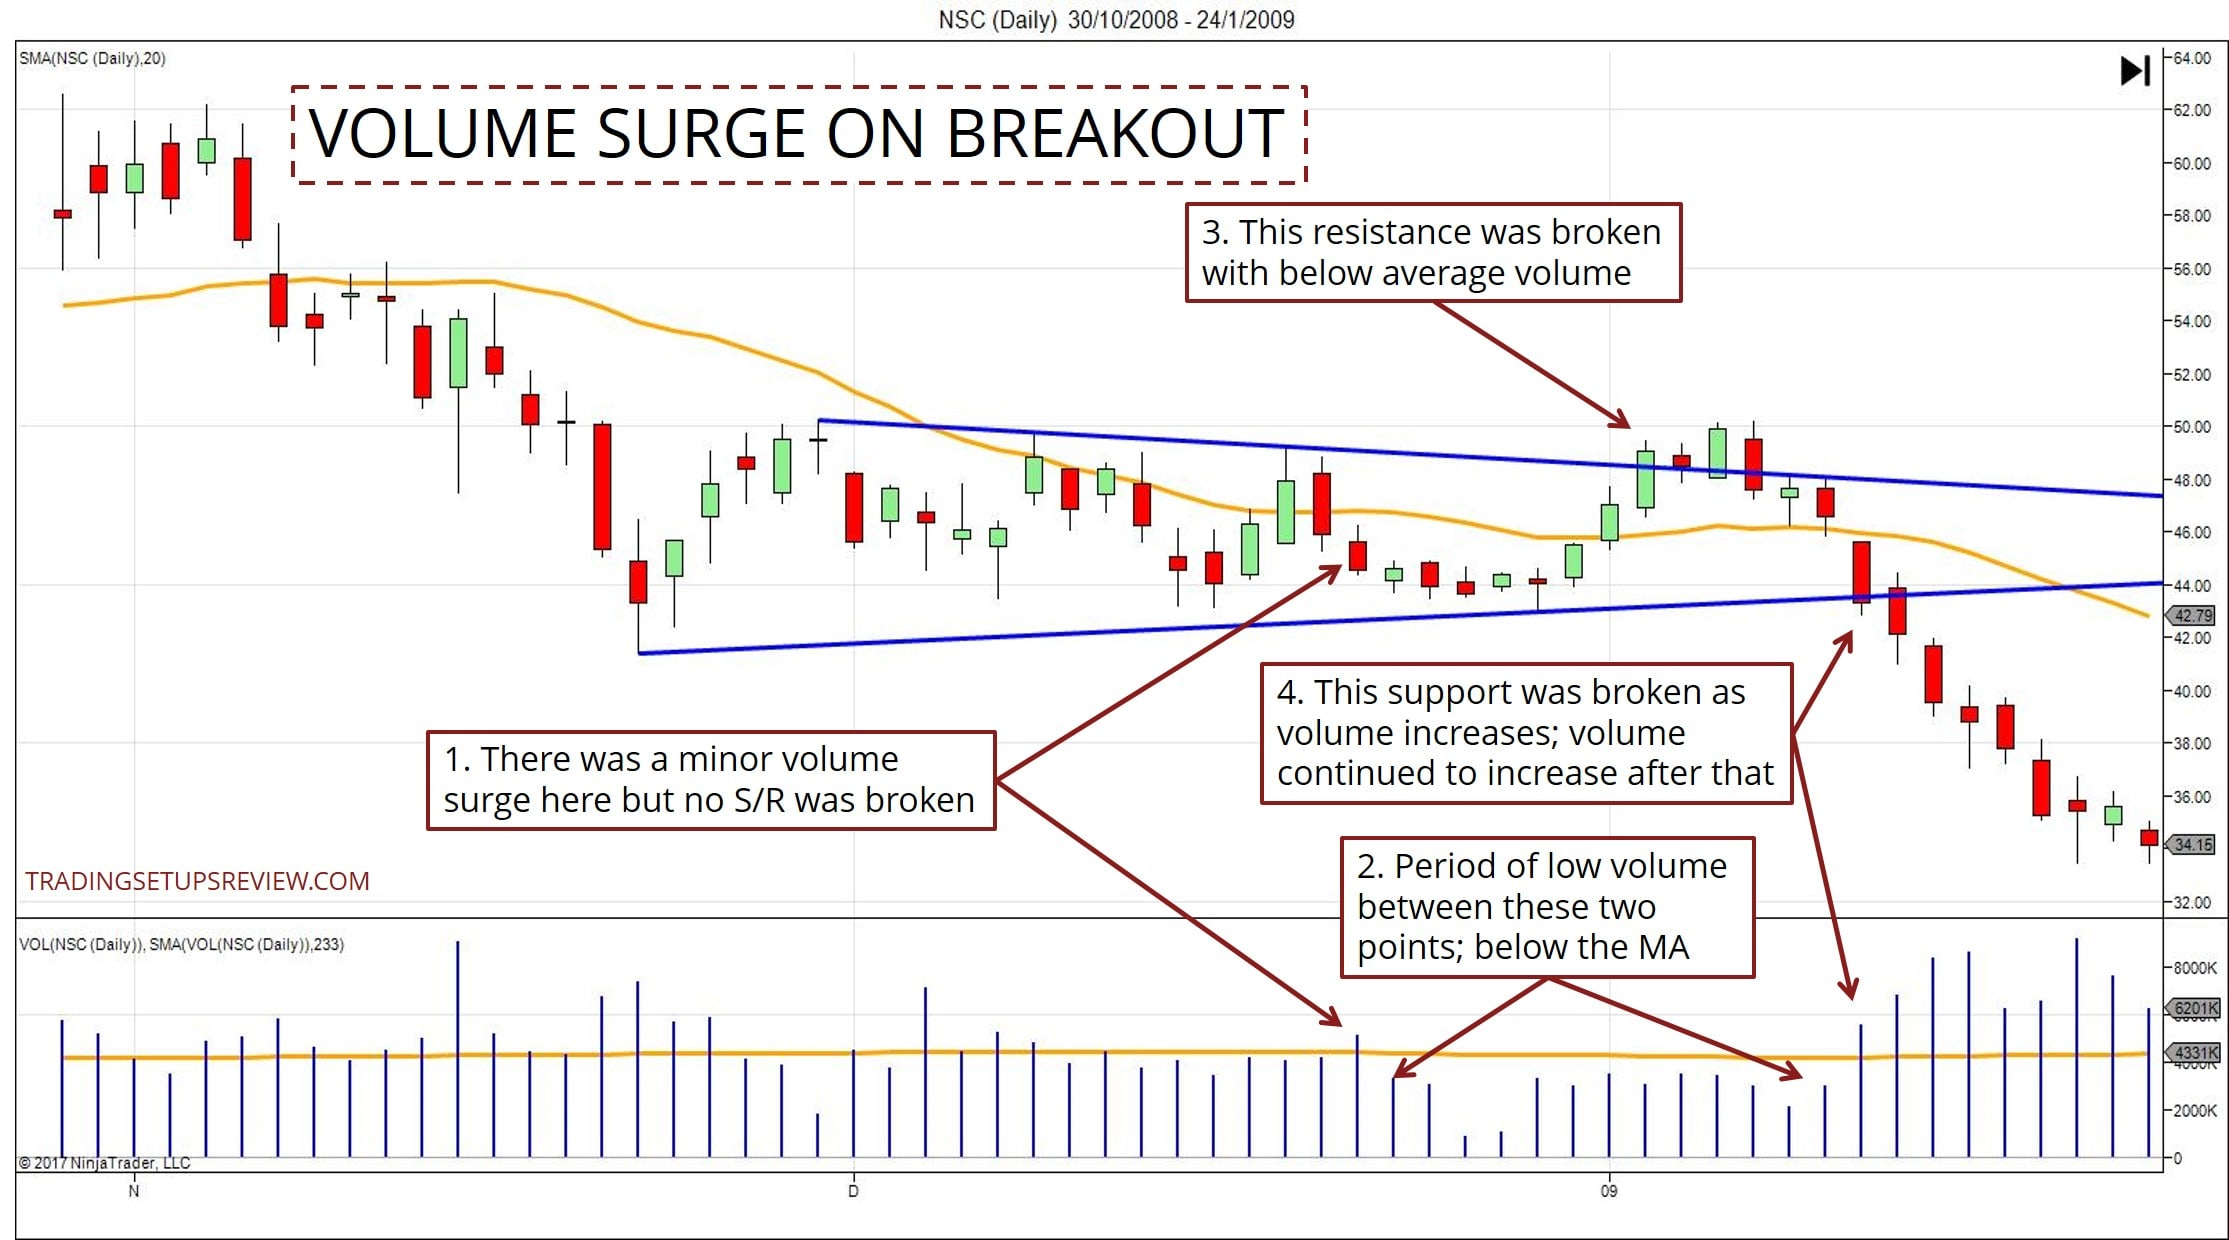 7 Powerful Tips for Trading Breakouts - Trading Setups Review